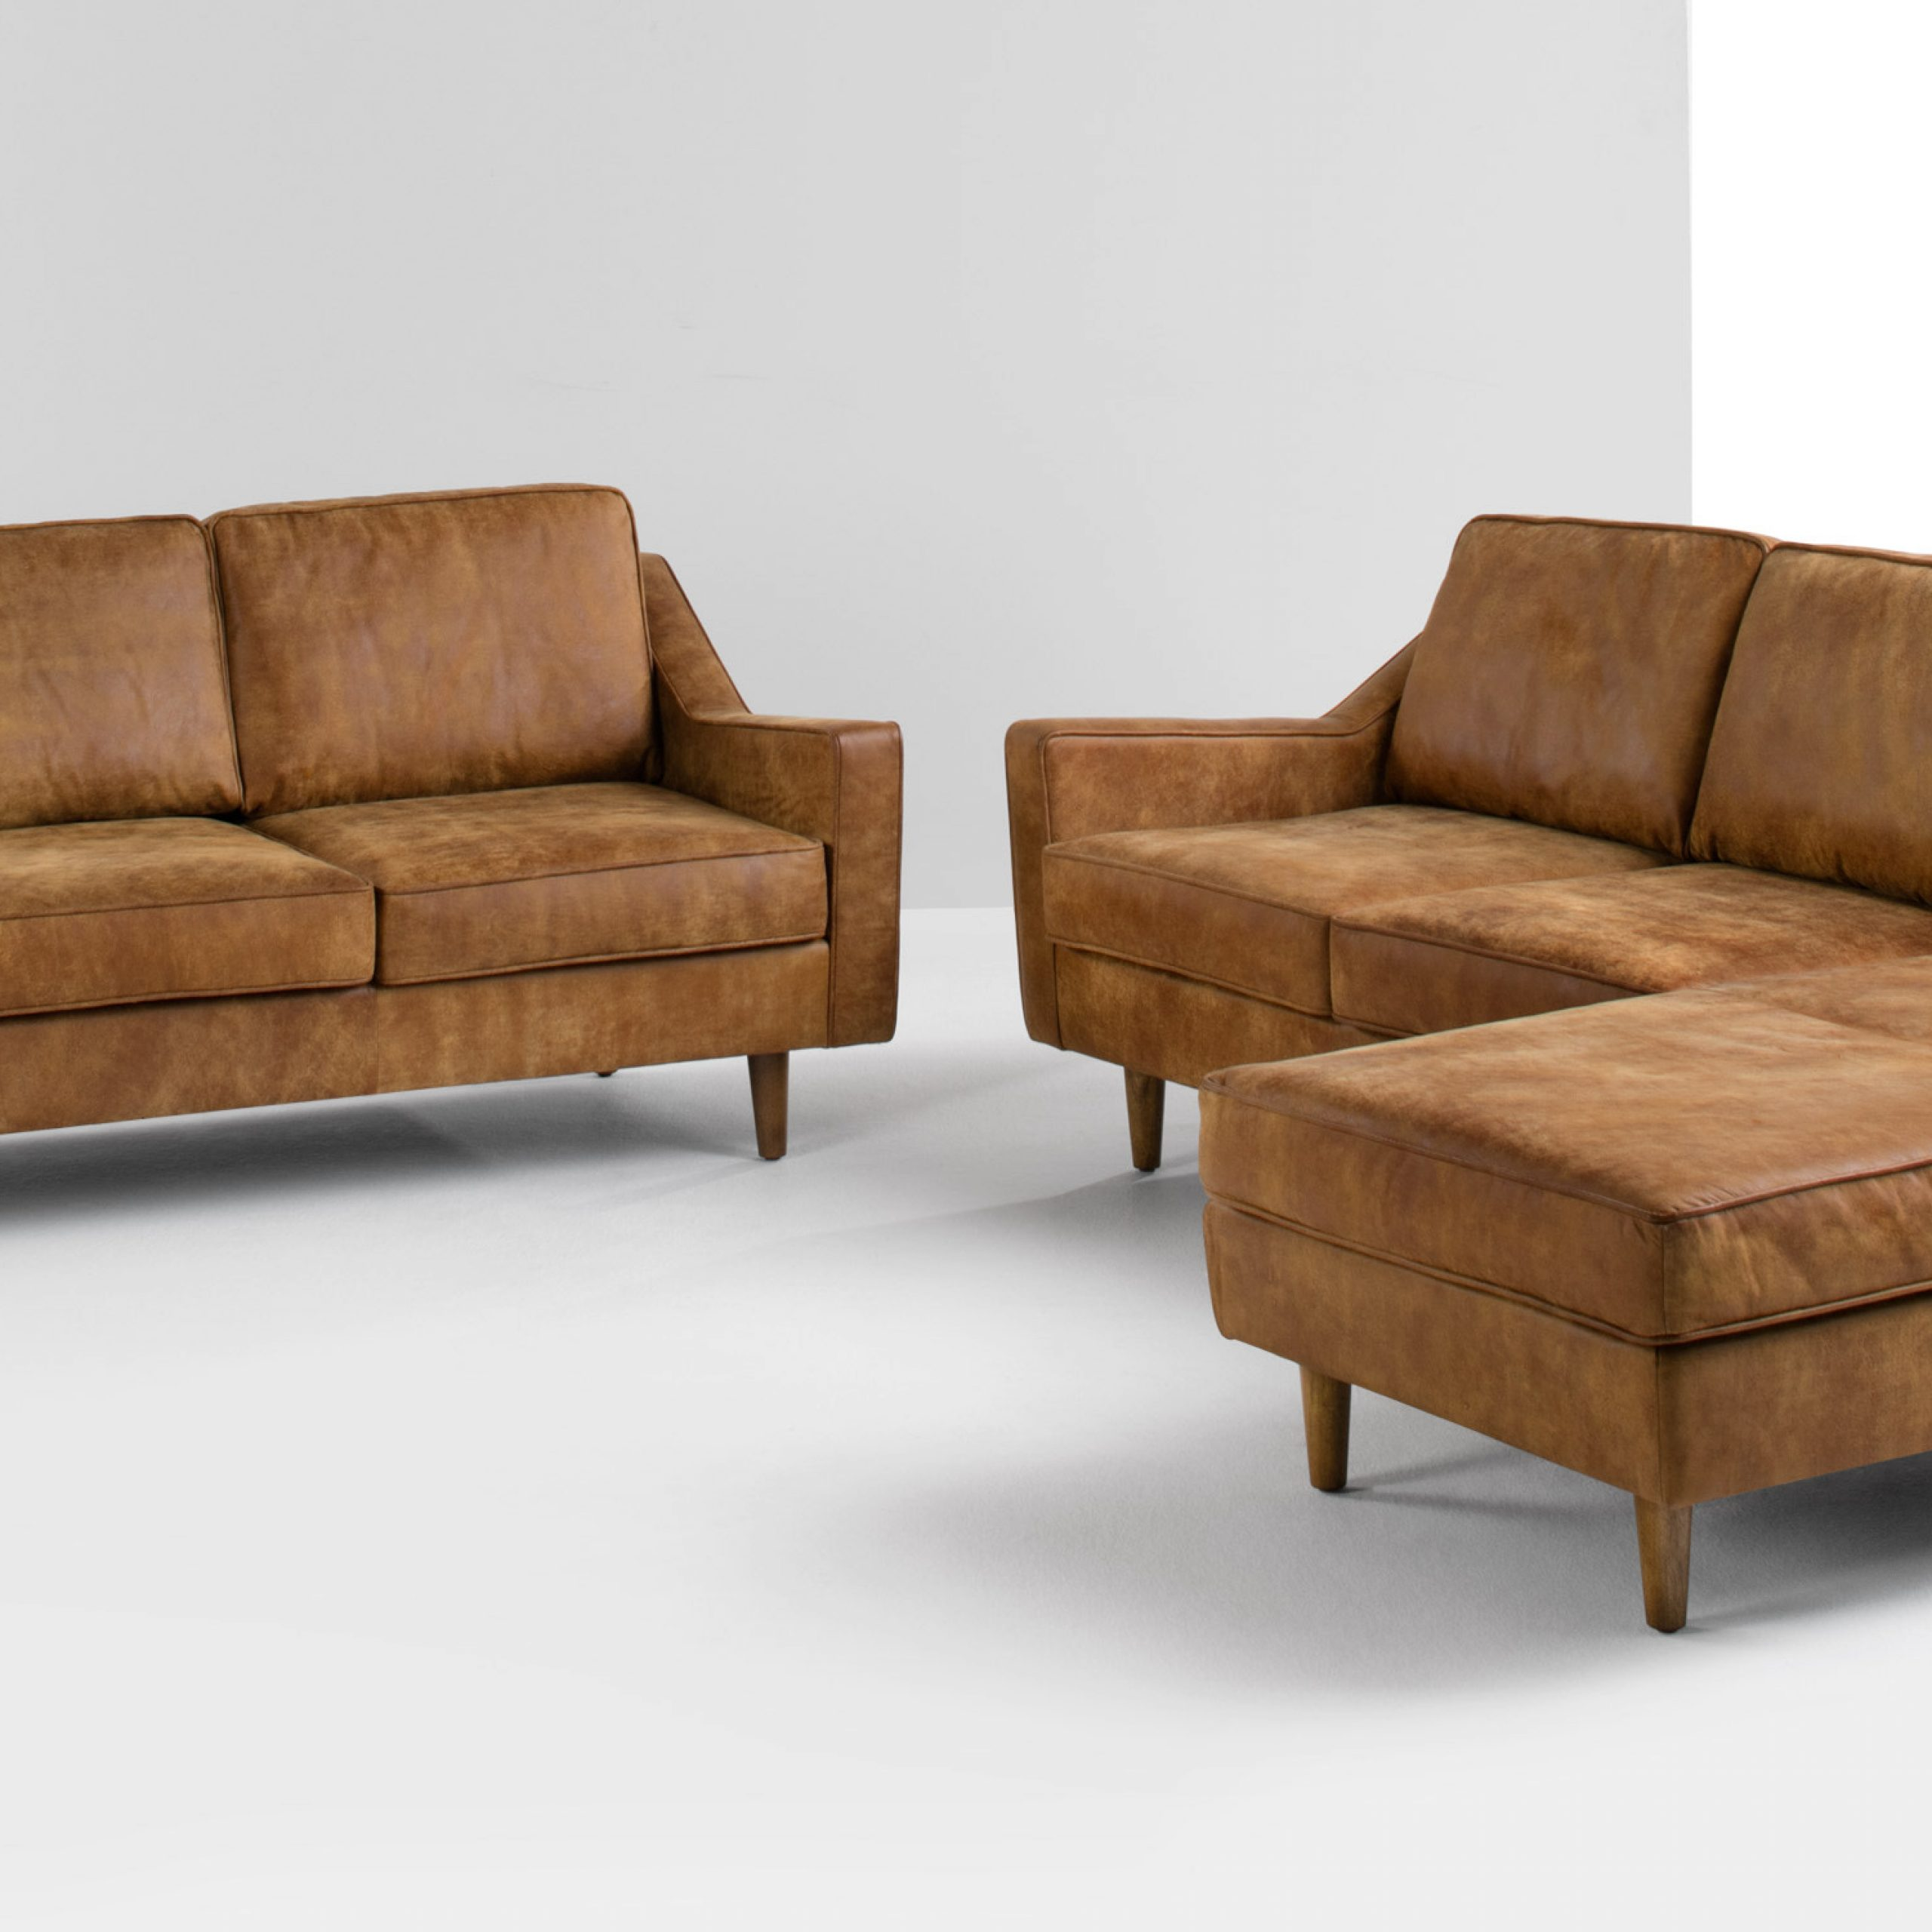 Dallas 2 Seater Sofa, Outback Tan Premium Leather   Made For 2 Seater Sofas (View 8 of 15)